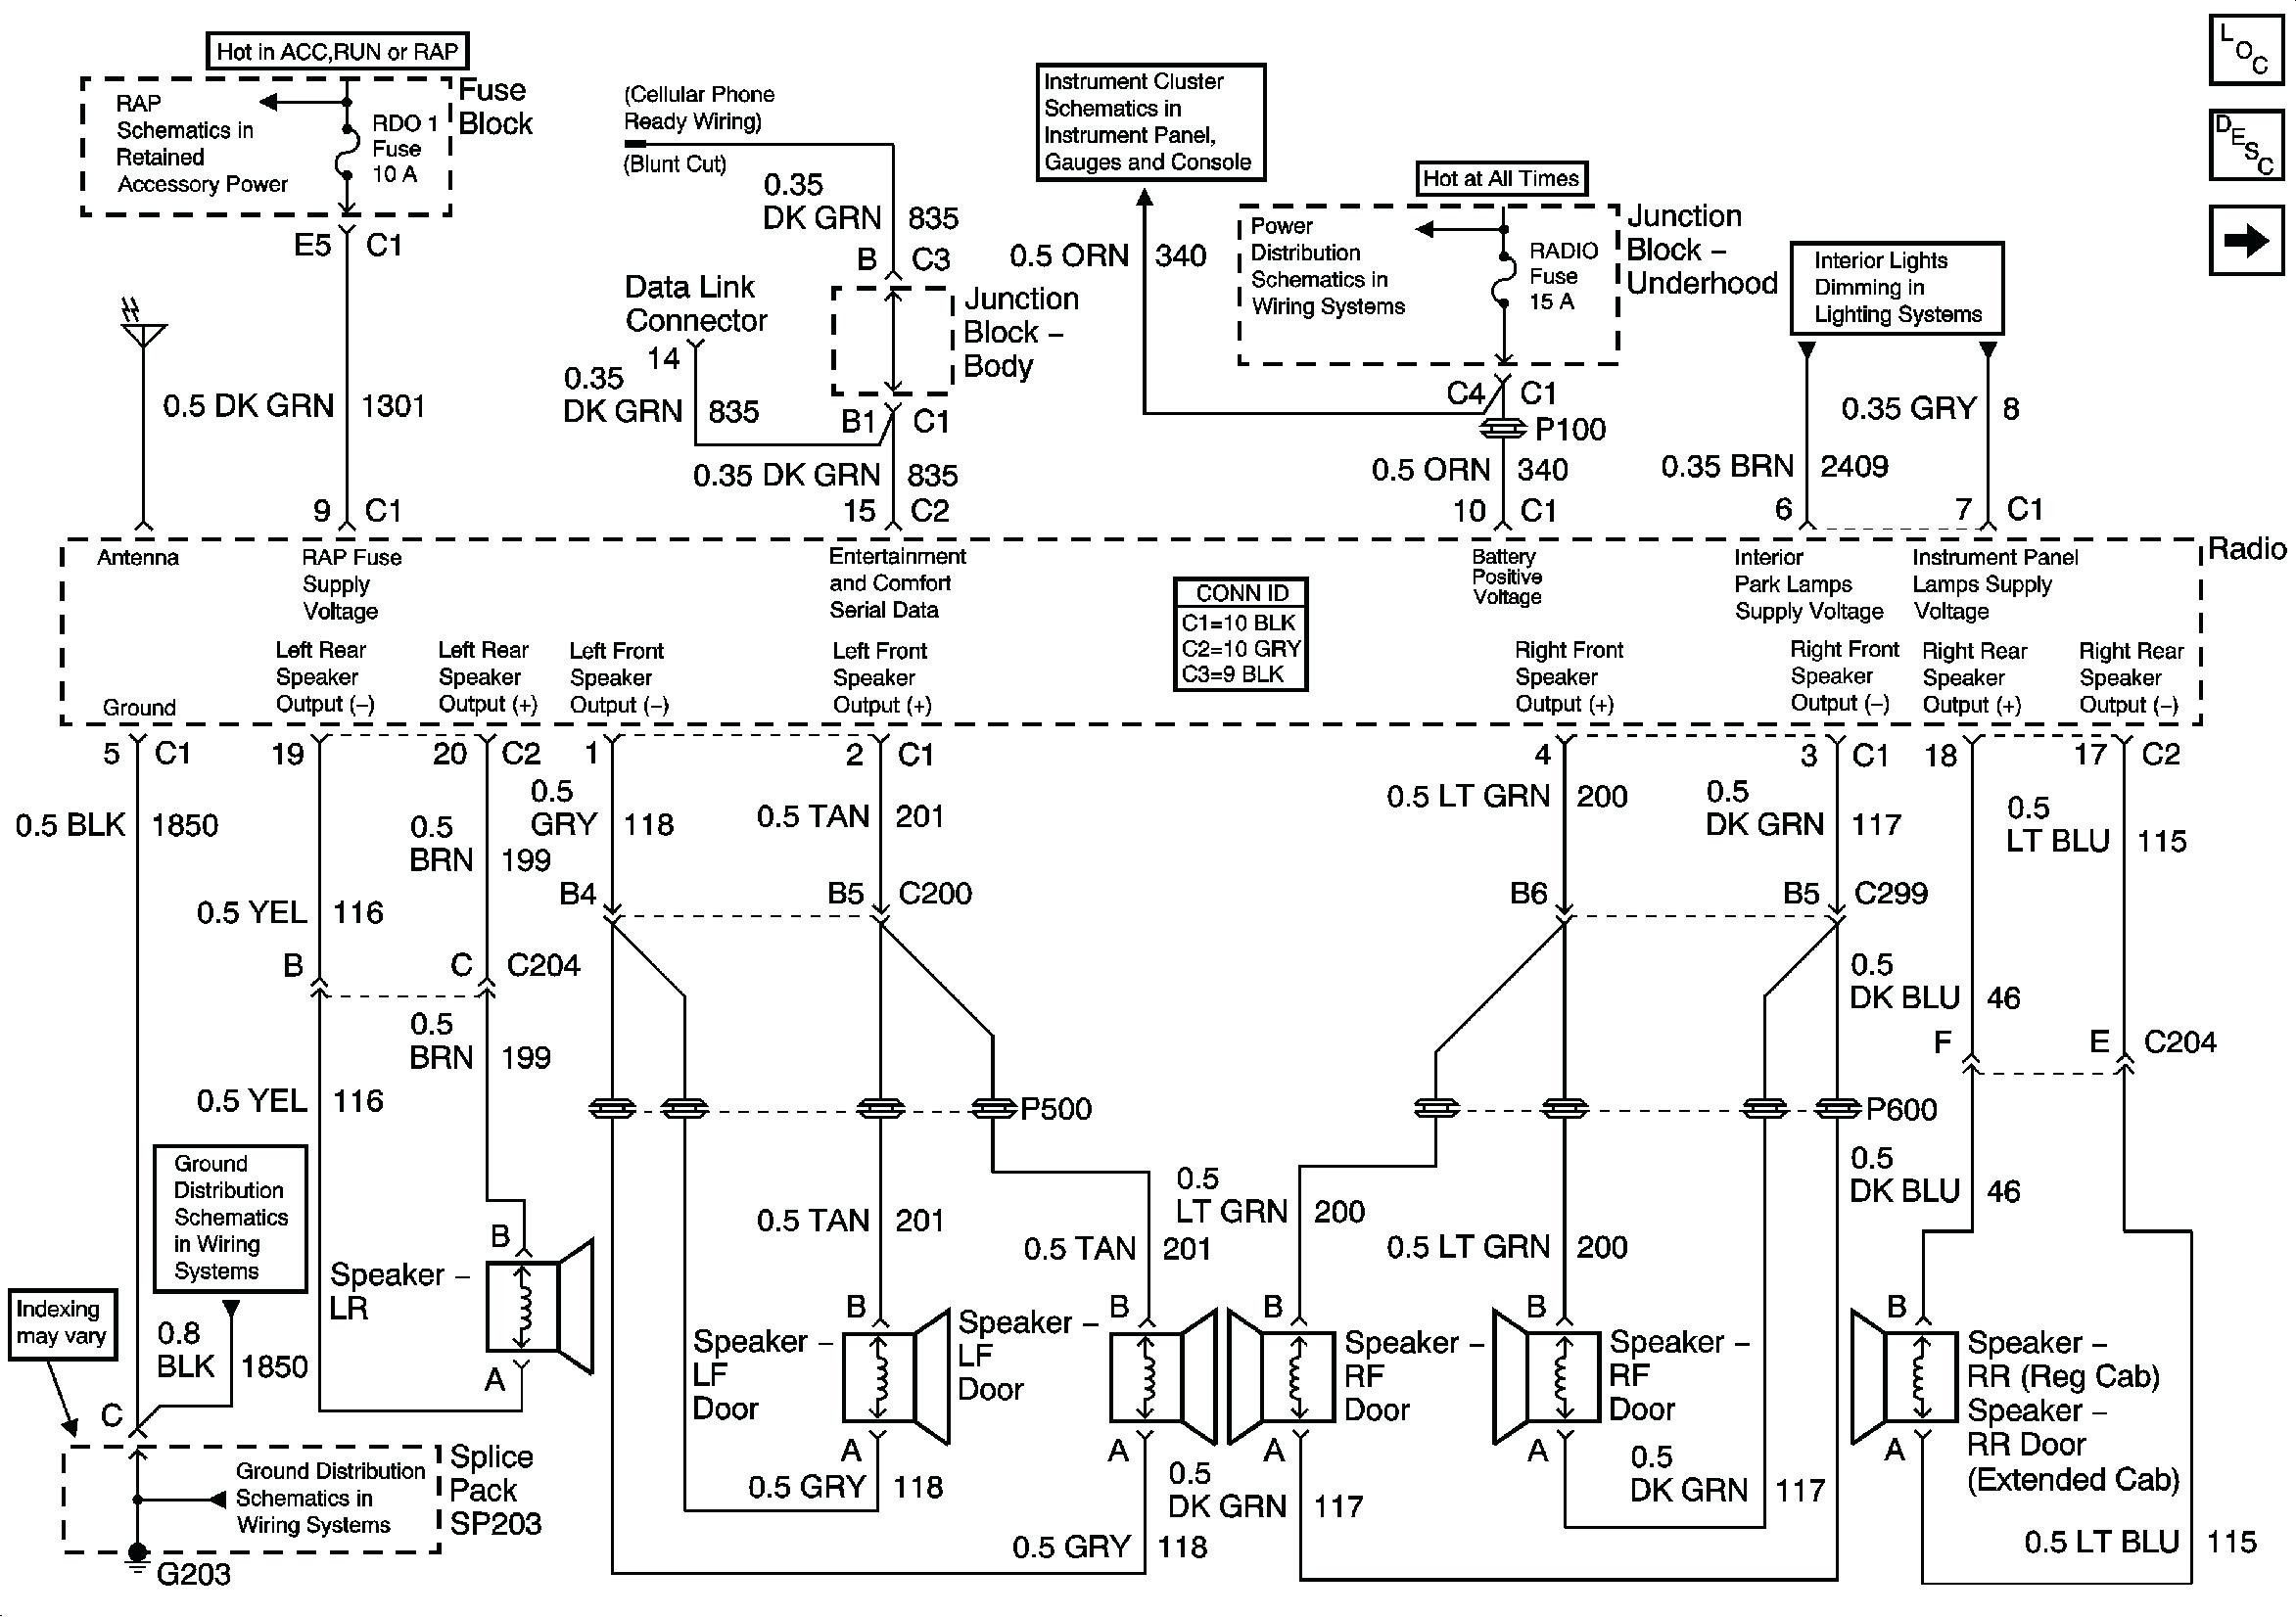 2004 Chevy Silverado Brake Light Wiring Diagram from i.pinimg.com